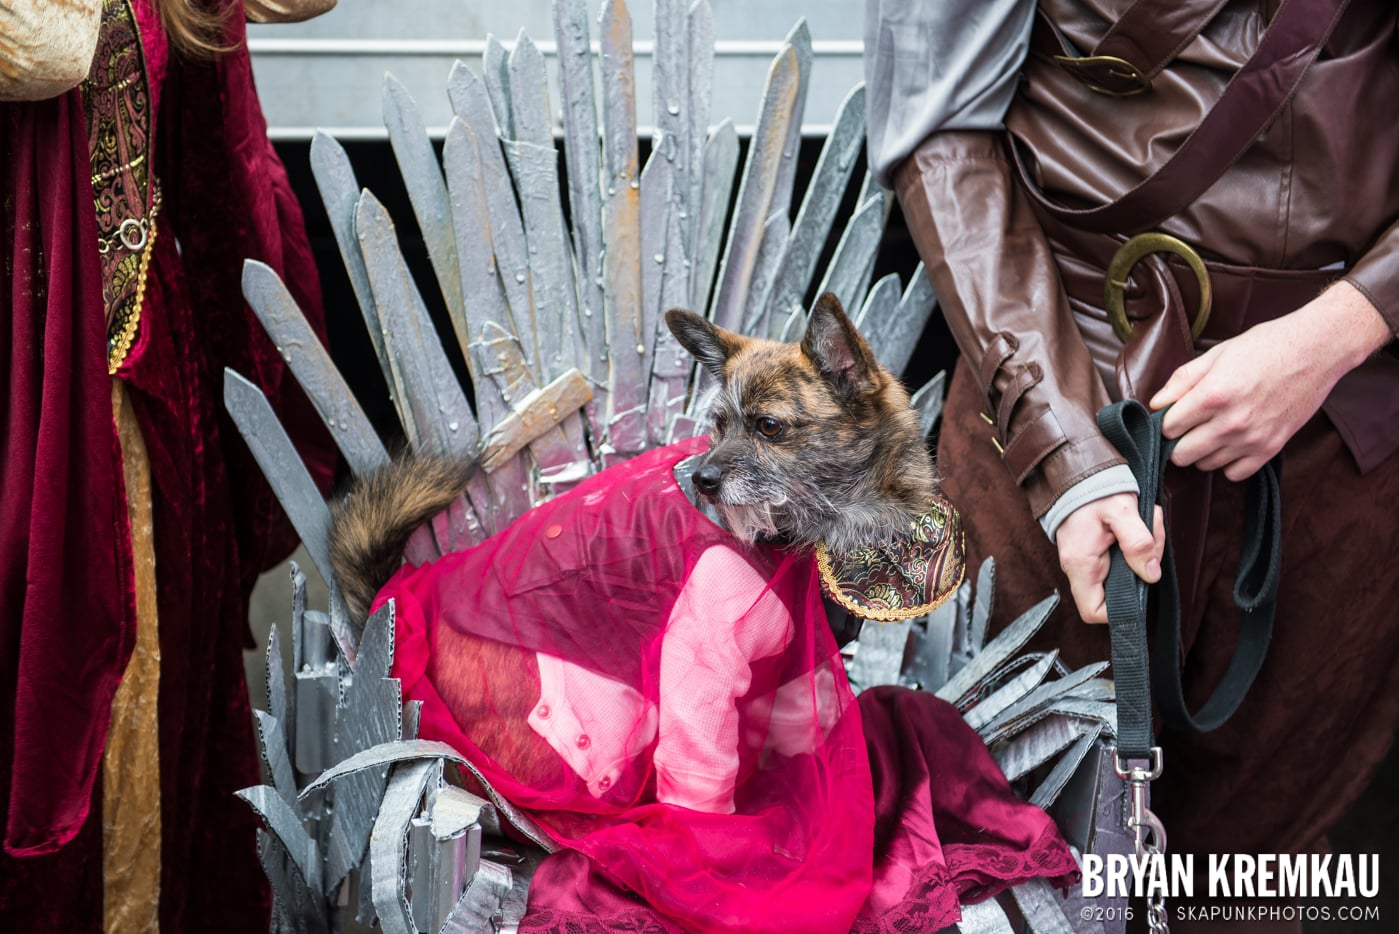 Tompkins Square Halloween Dog Parade 2015 @ Tompkins Square Park, NYC – 10.24.15 (48)